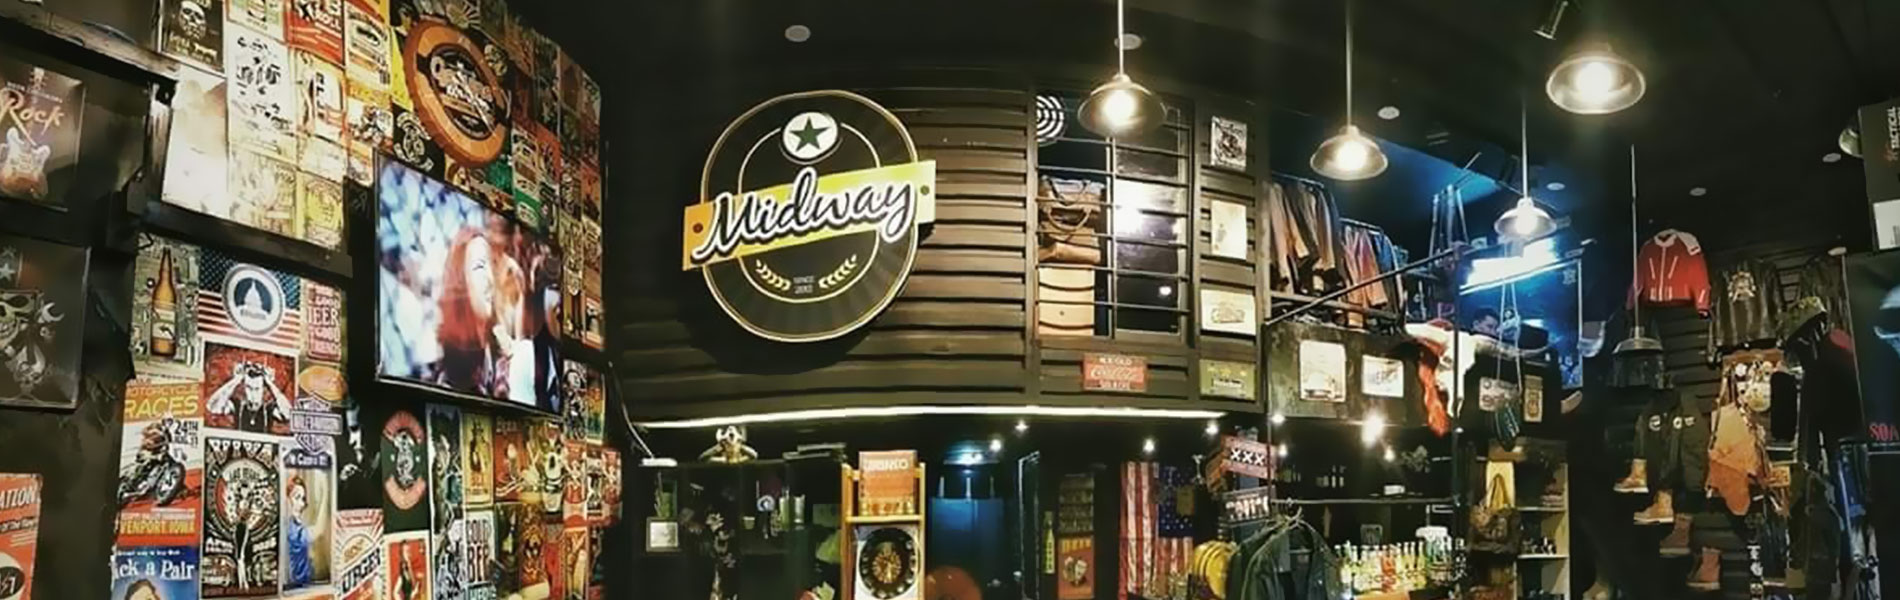 Midway Cafe India - World's No.1 Food Franchise Company